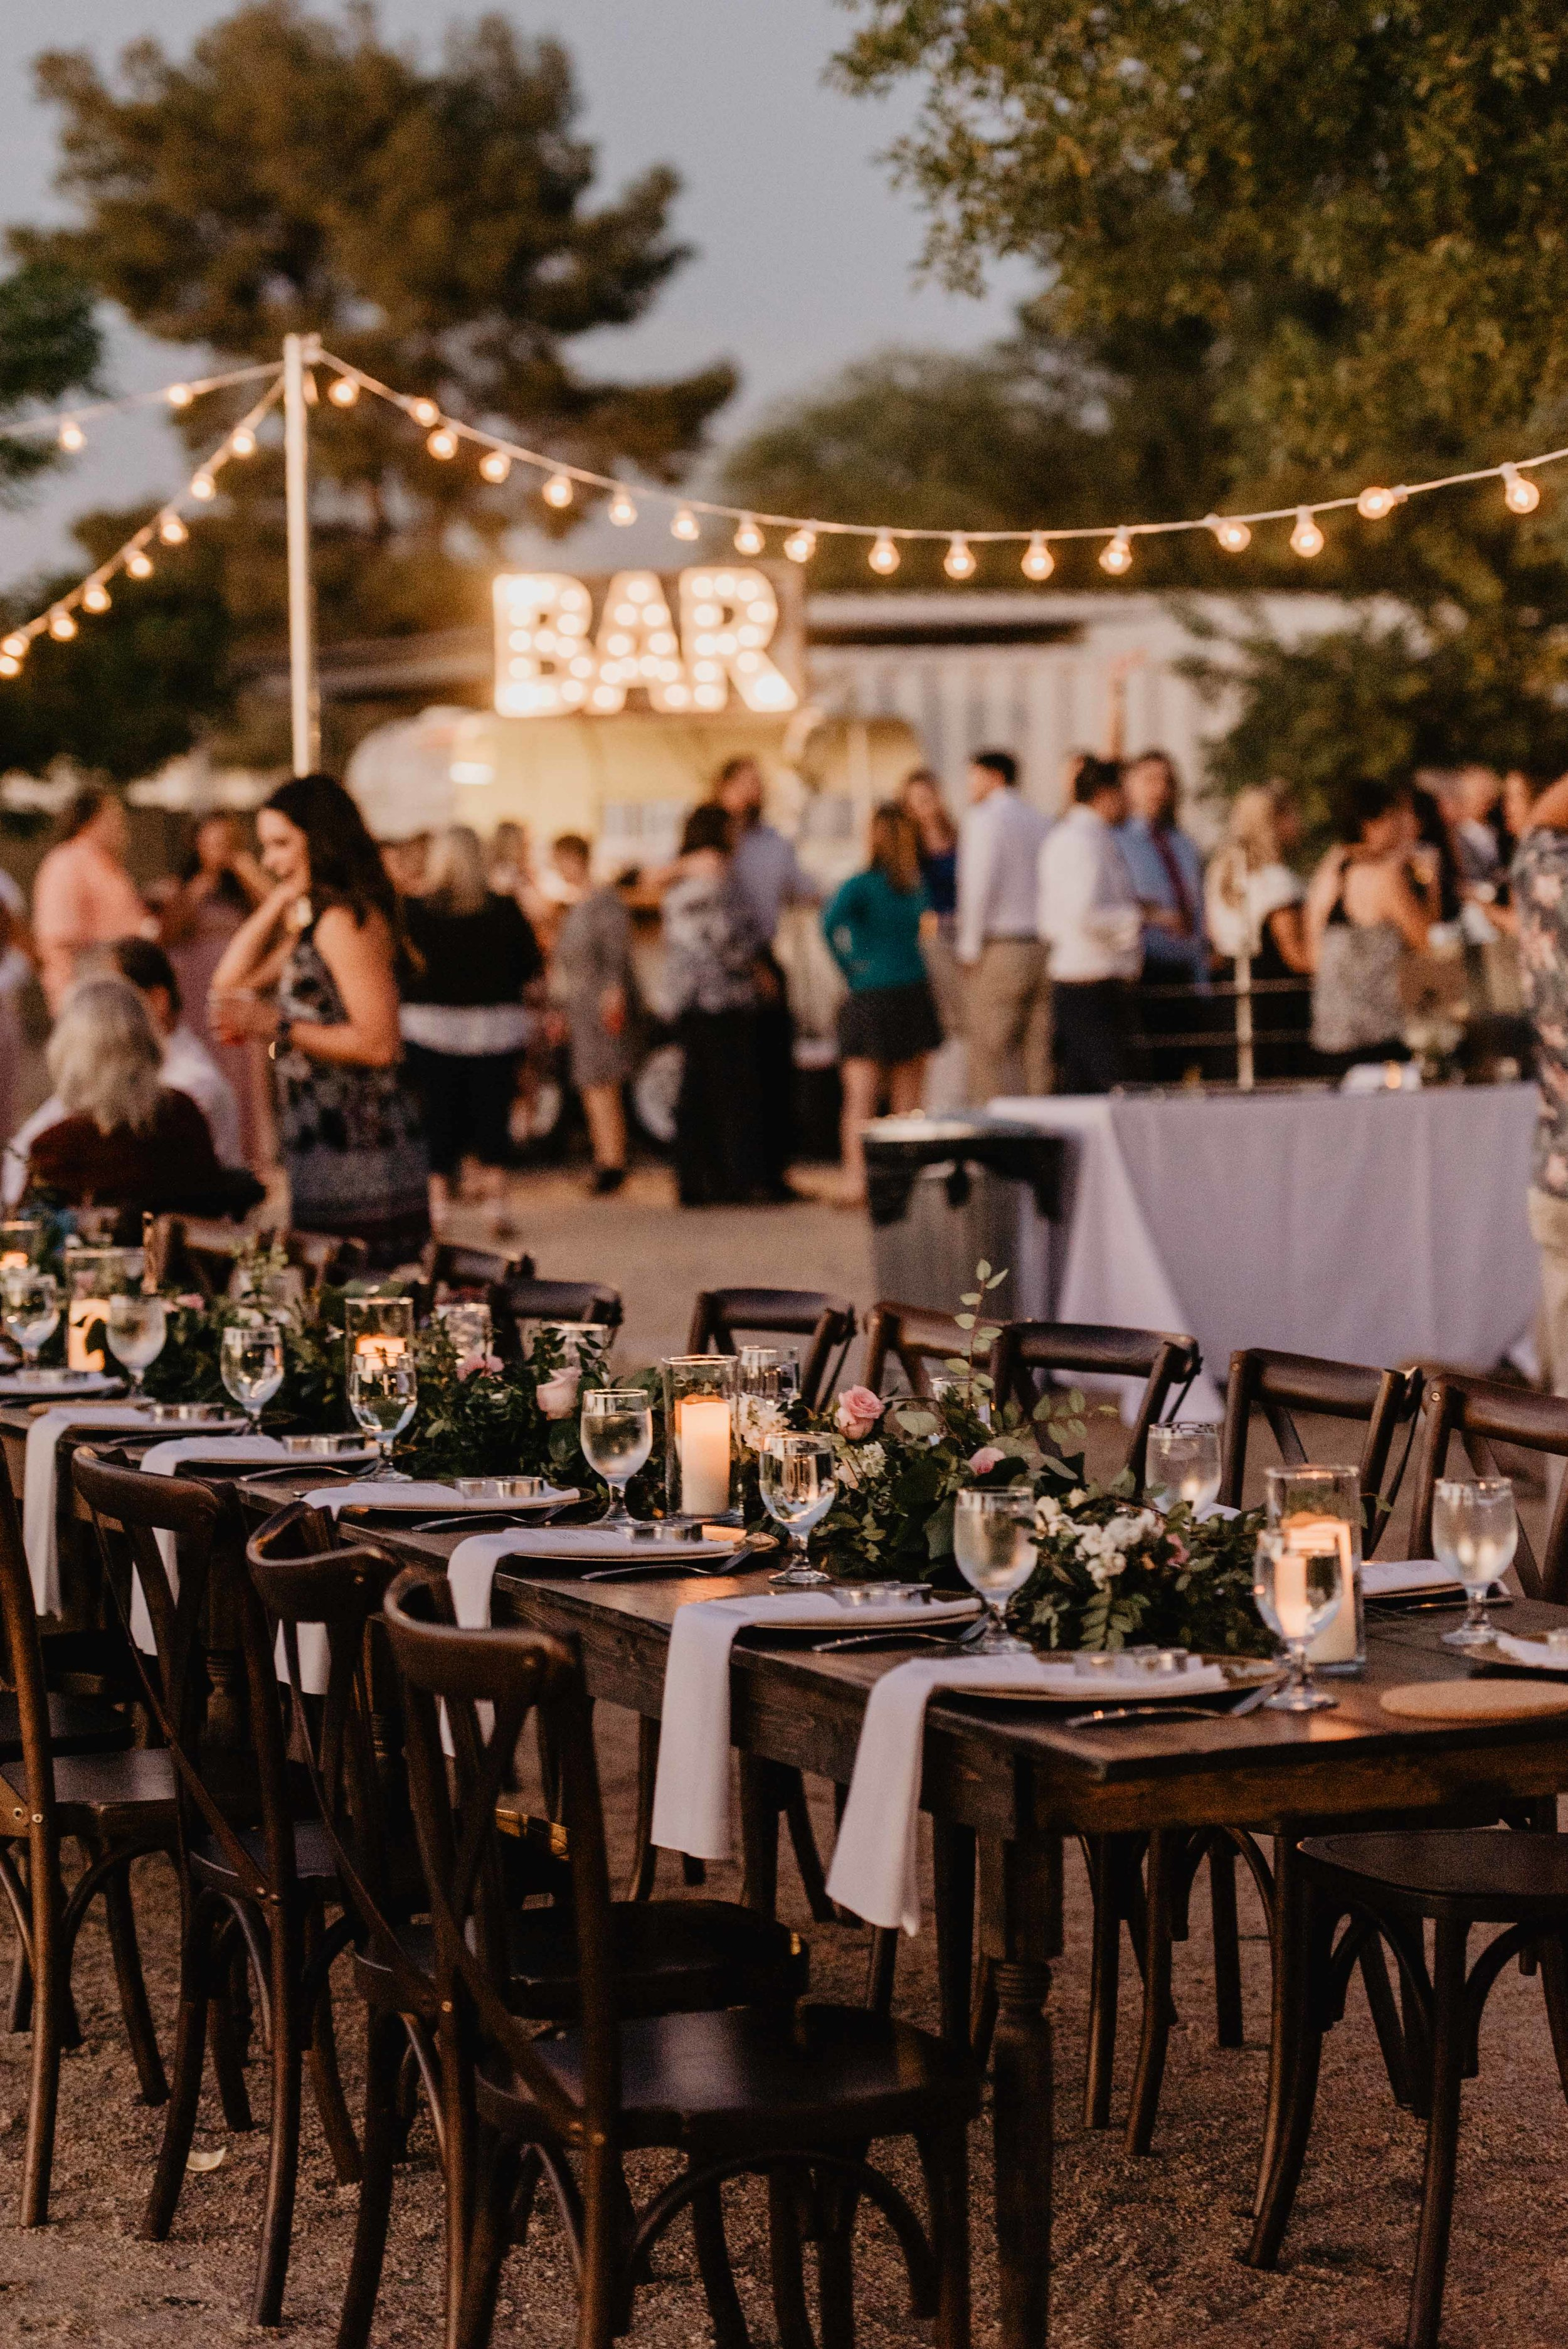 peoria backyard wedding photographer - DIY Backyard Wedding - Arizona Intimate Wedding Photograper - Backyard Arizona Wedding DIY Reception